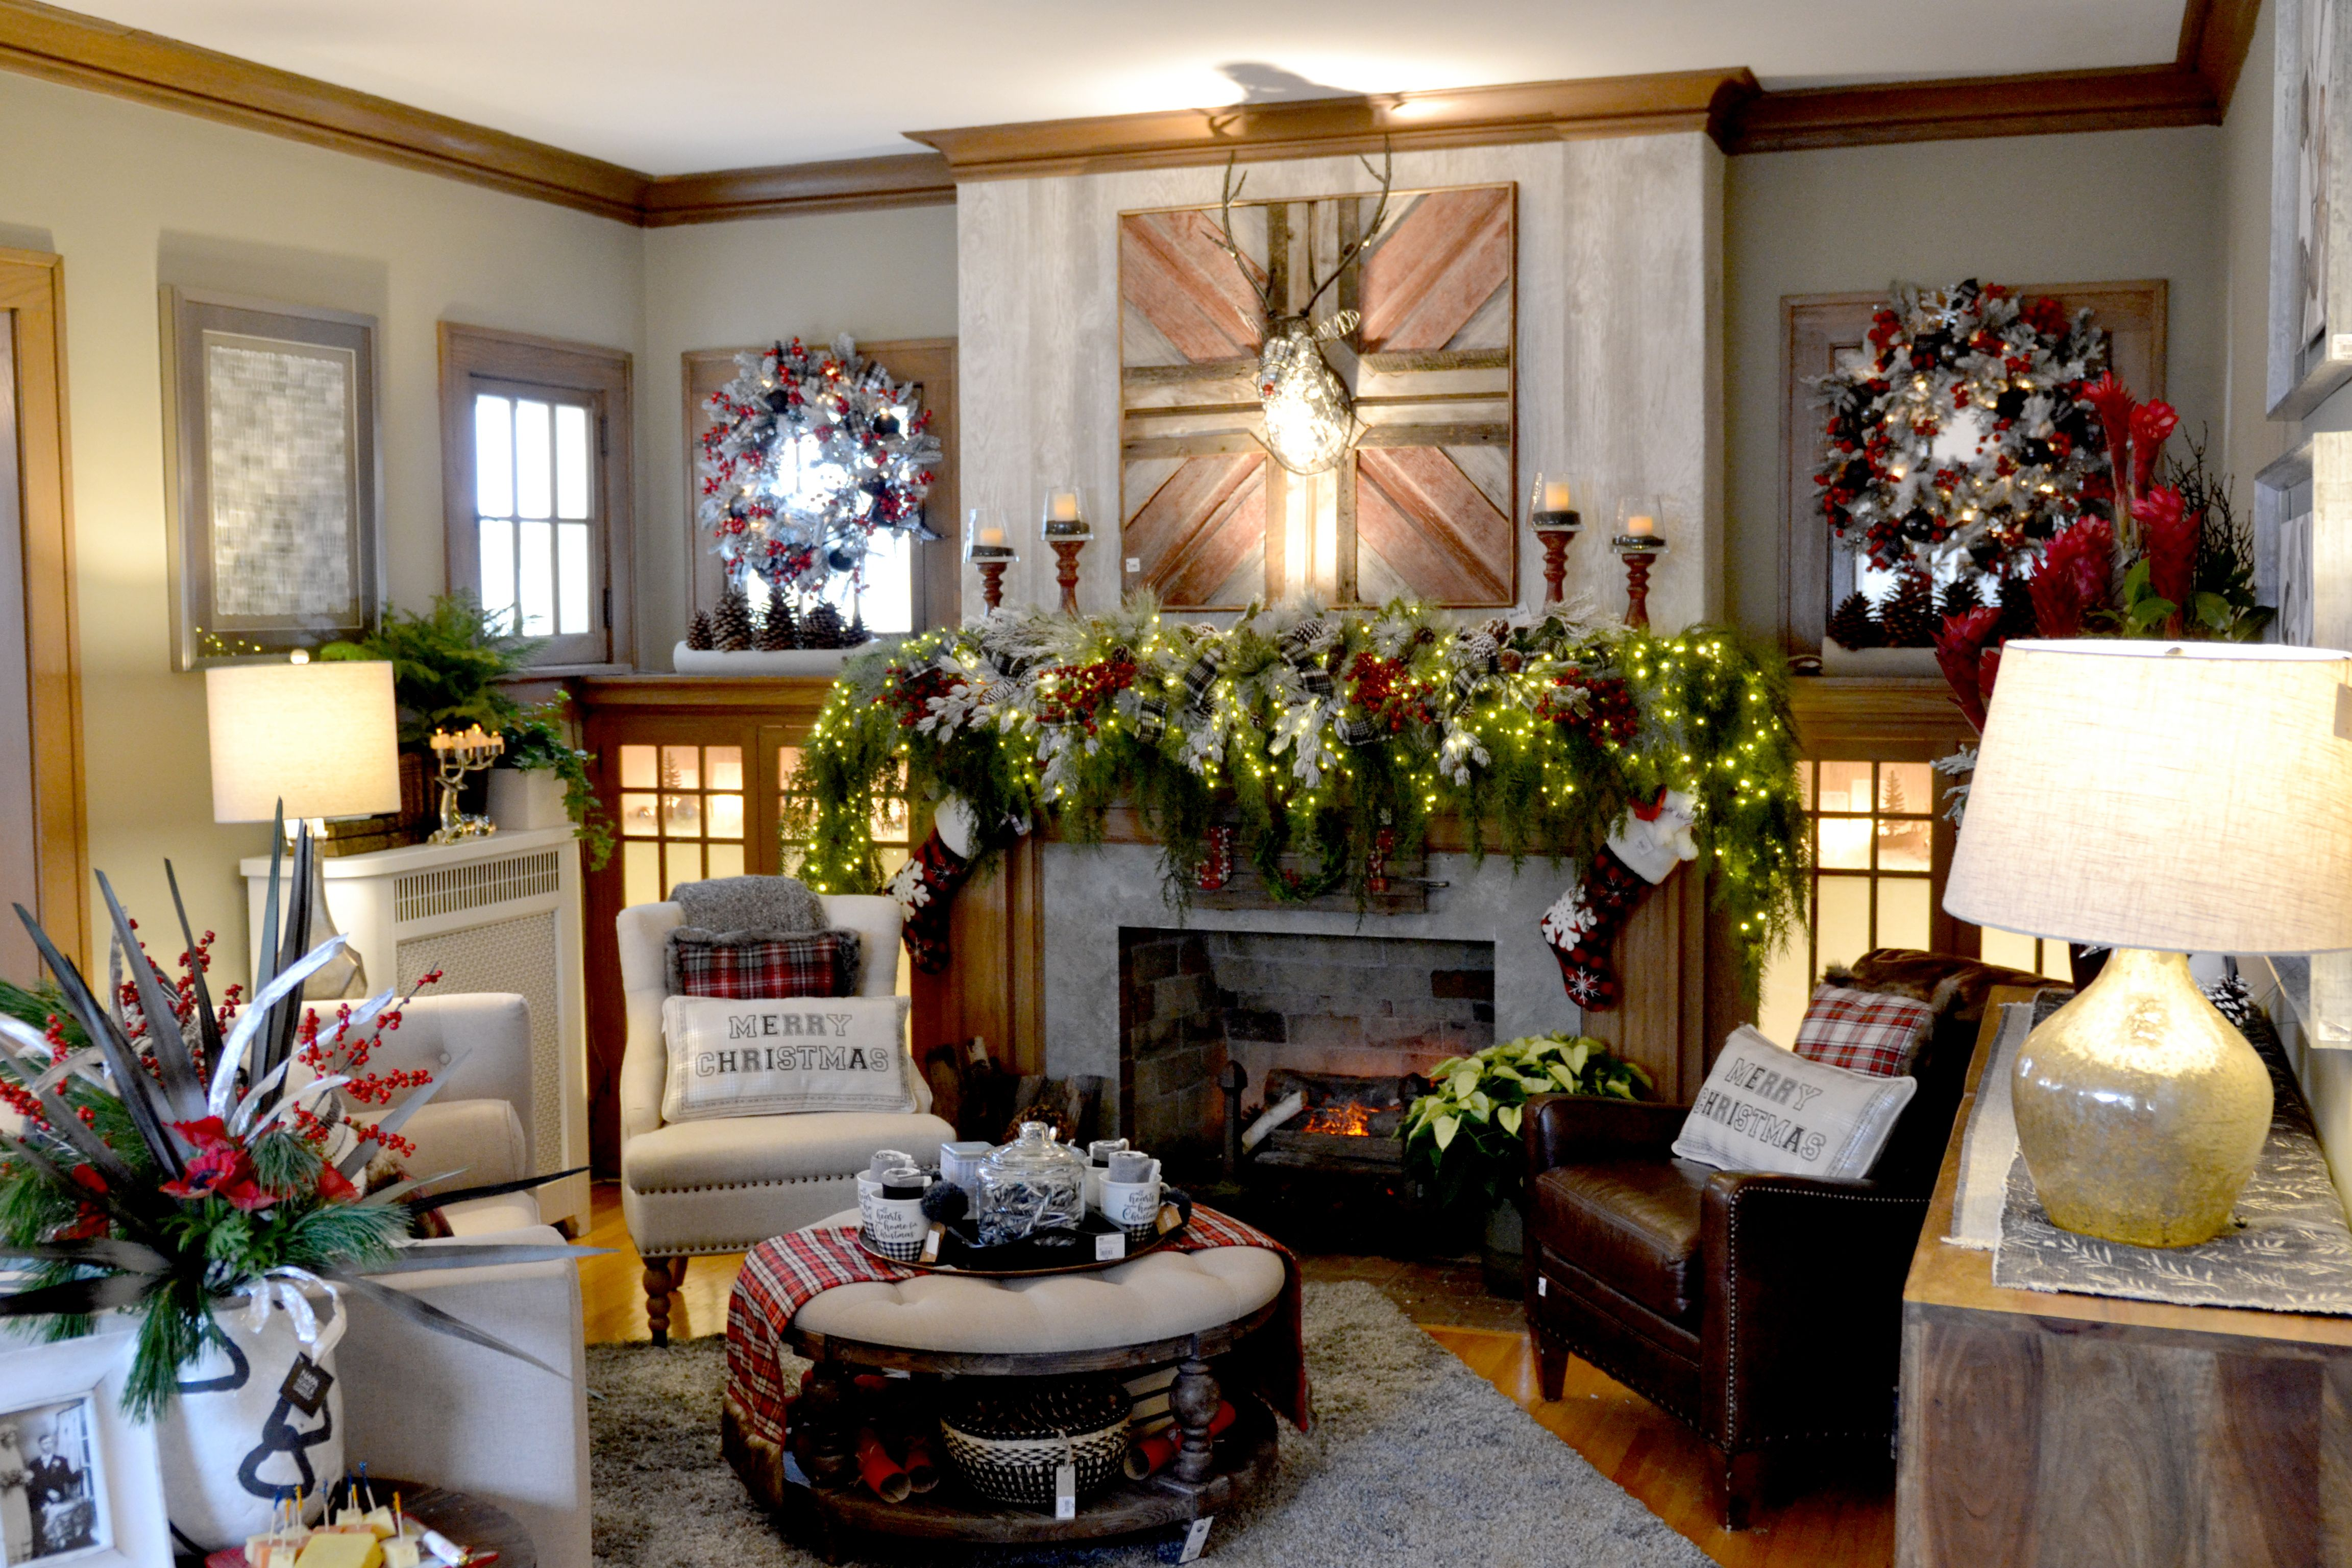 Living Room Filled With Holiday Decor As Seen In 2018 Bachman S Ideas House Planting Flowers Decor Minneapolis Florists